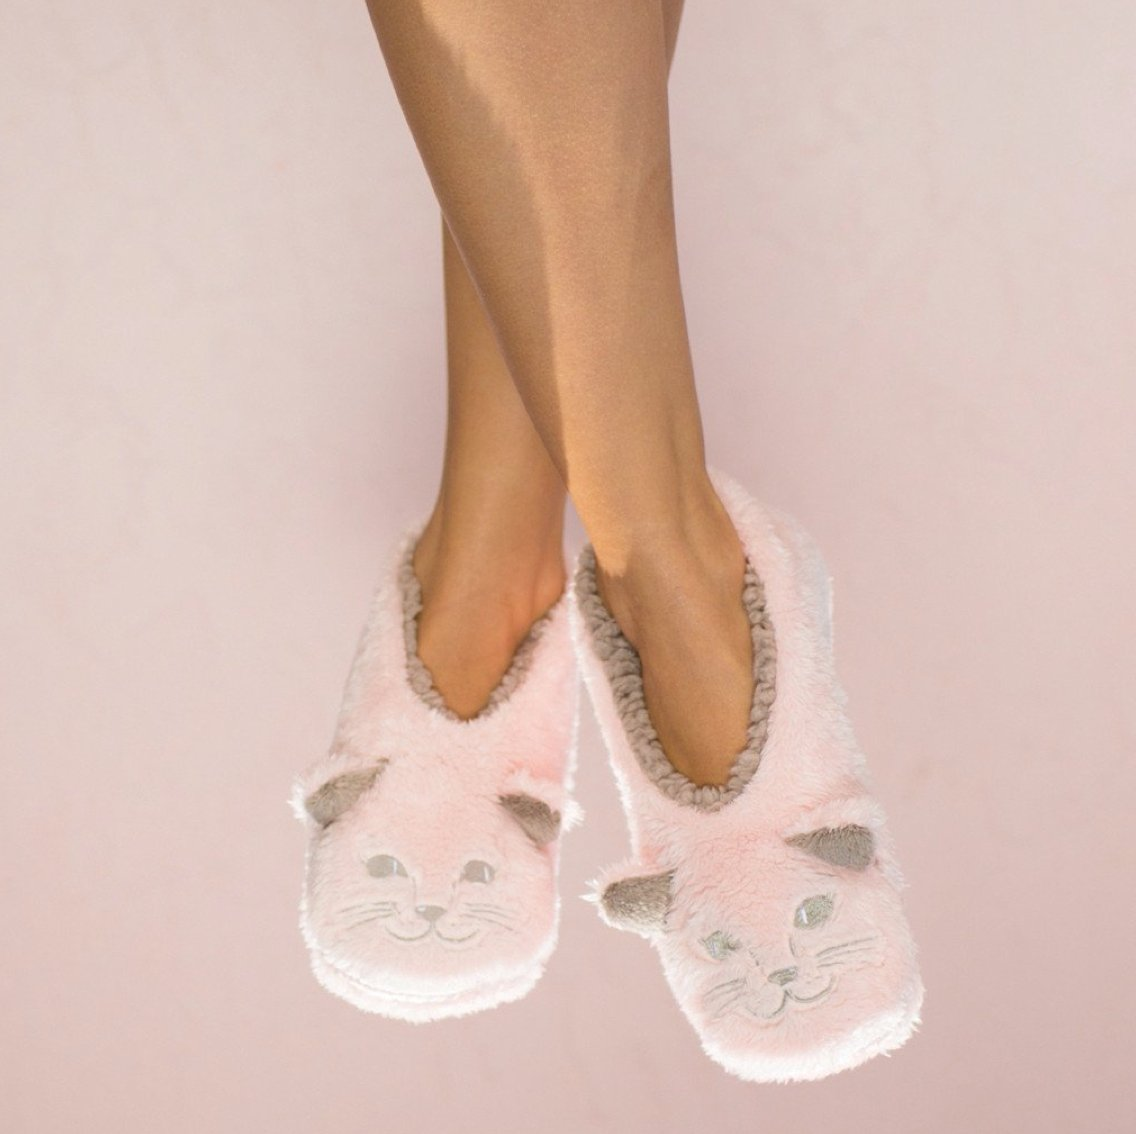 CAT NAPS FOOTSIES - Molly's! A Chic and Unique Boutique